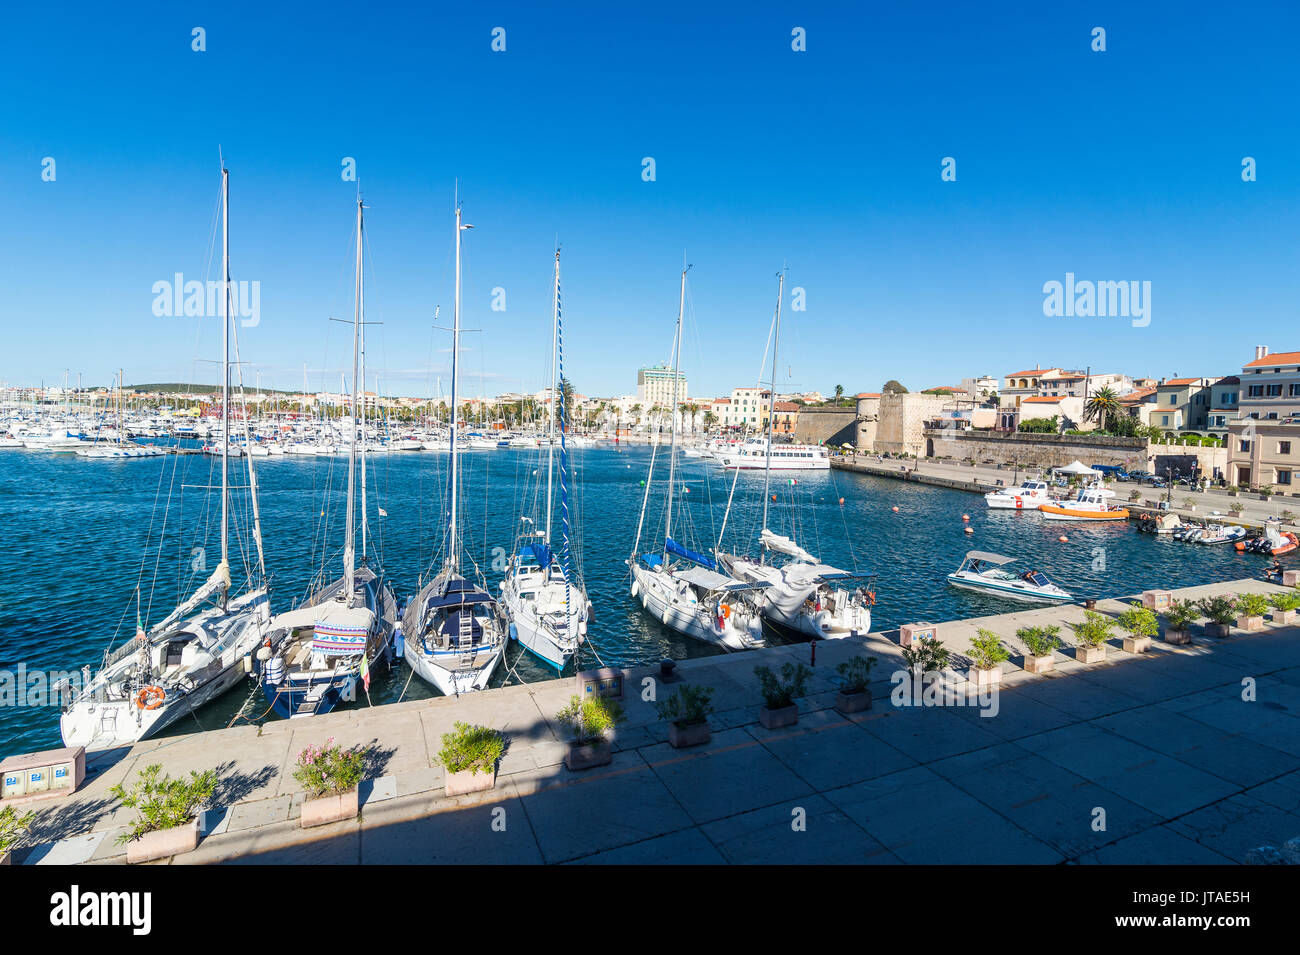 View over the boat harbour of the coastal town of Alghero, Sardinia, Italy, Mediterranean, Europe - Stock Image